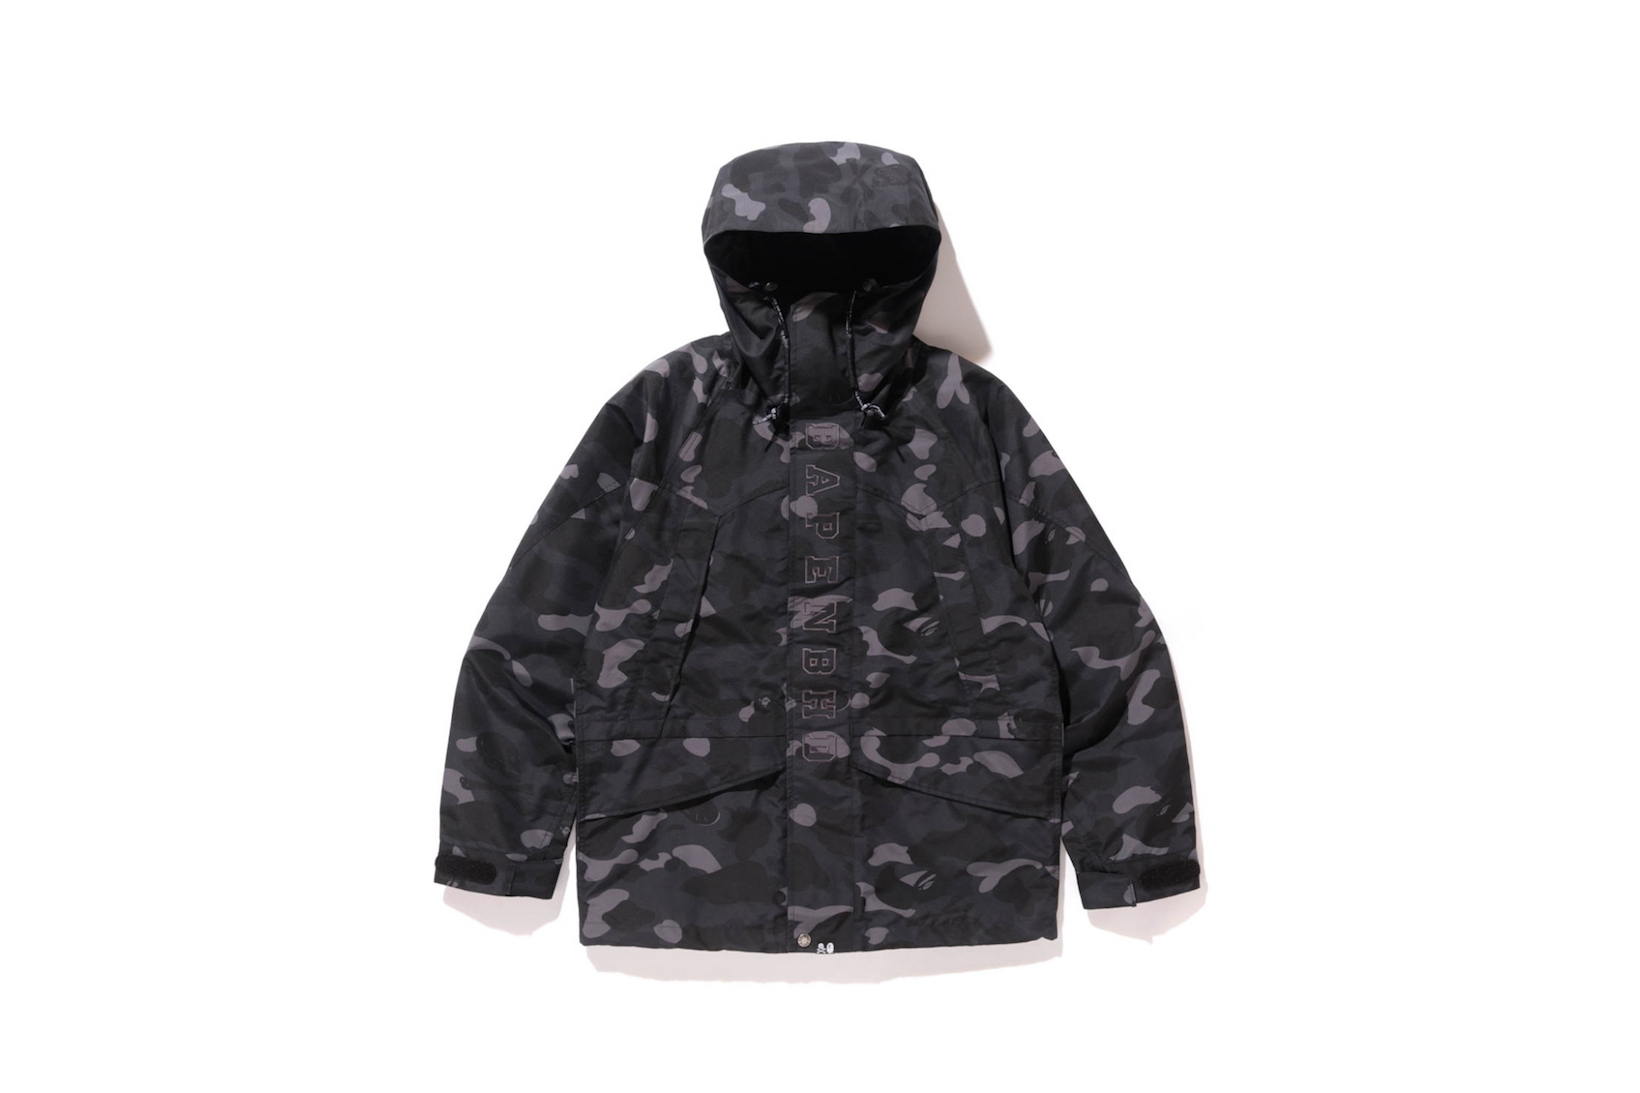 BAPE NEIGHBORHOOD 2017 - 1848812